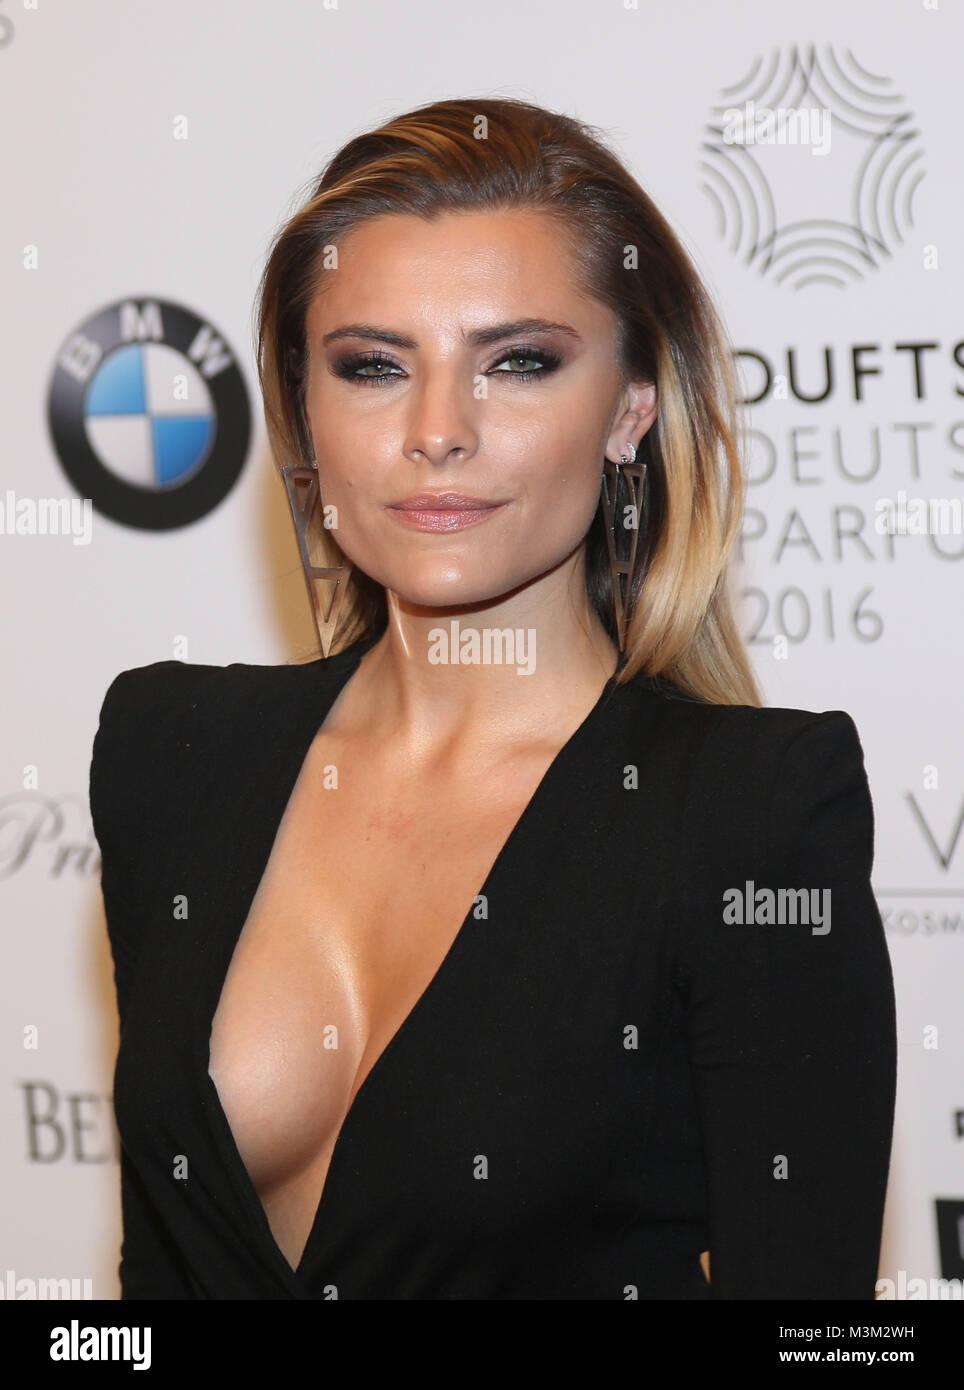 Pictures Sophia Thomalla nude photos 2019